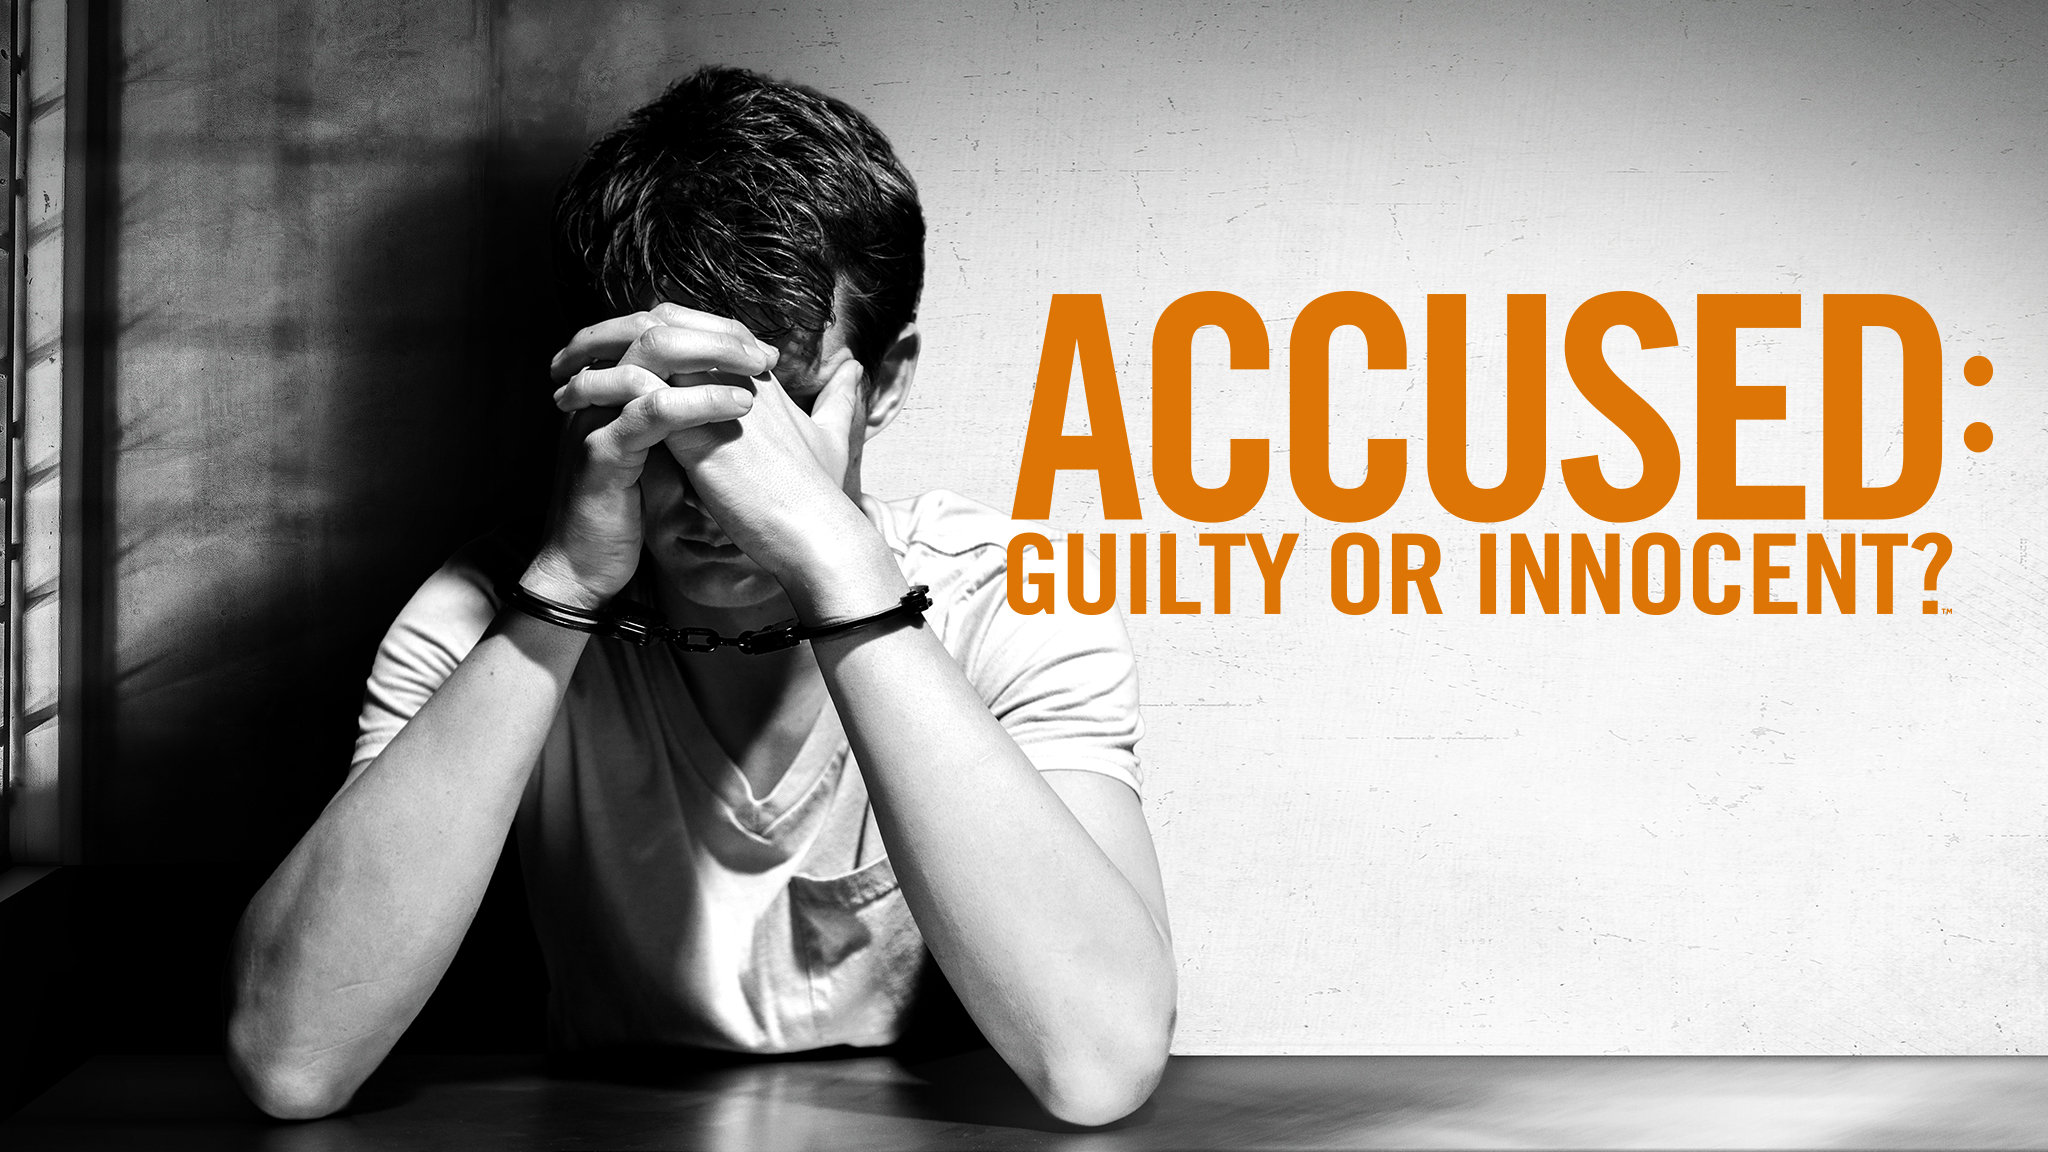 Accused: Guilty or Innocent? Alt Image